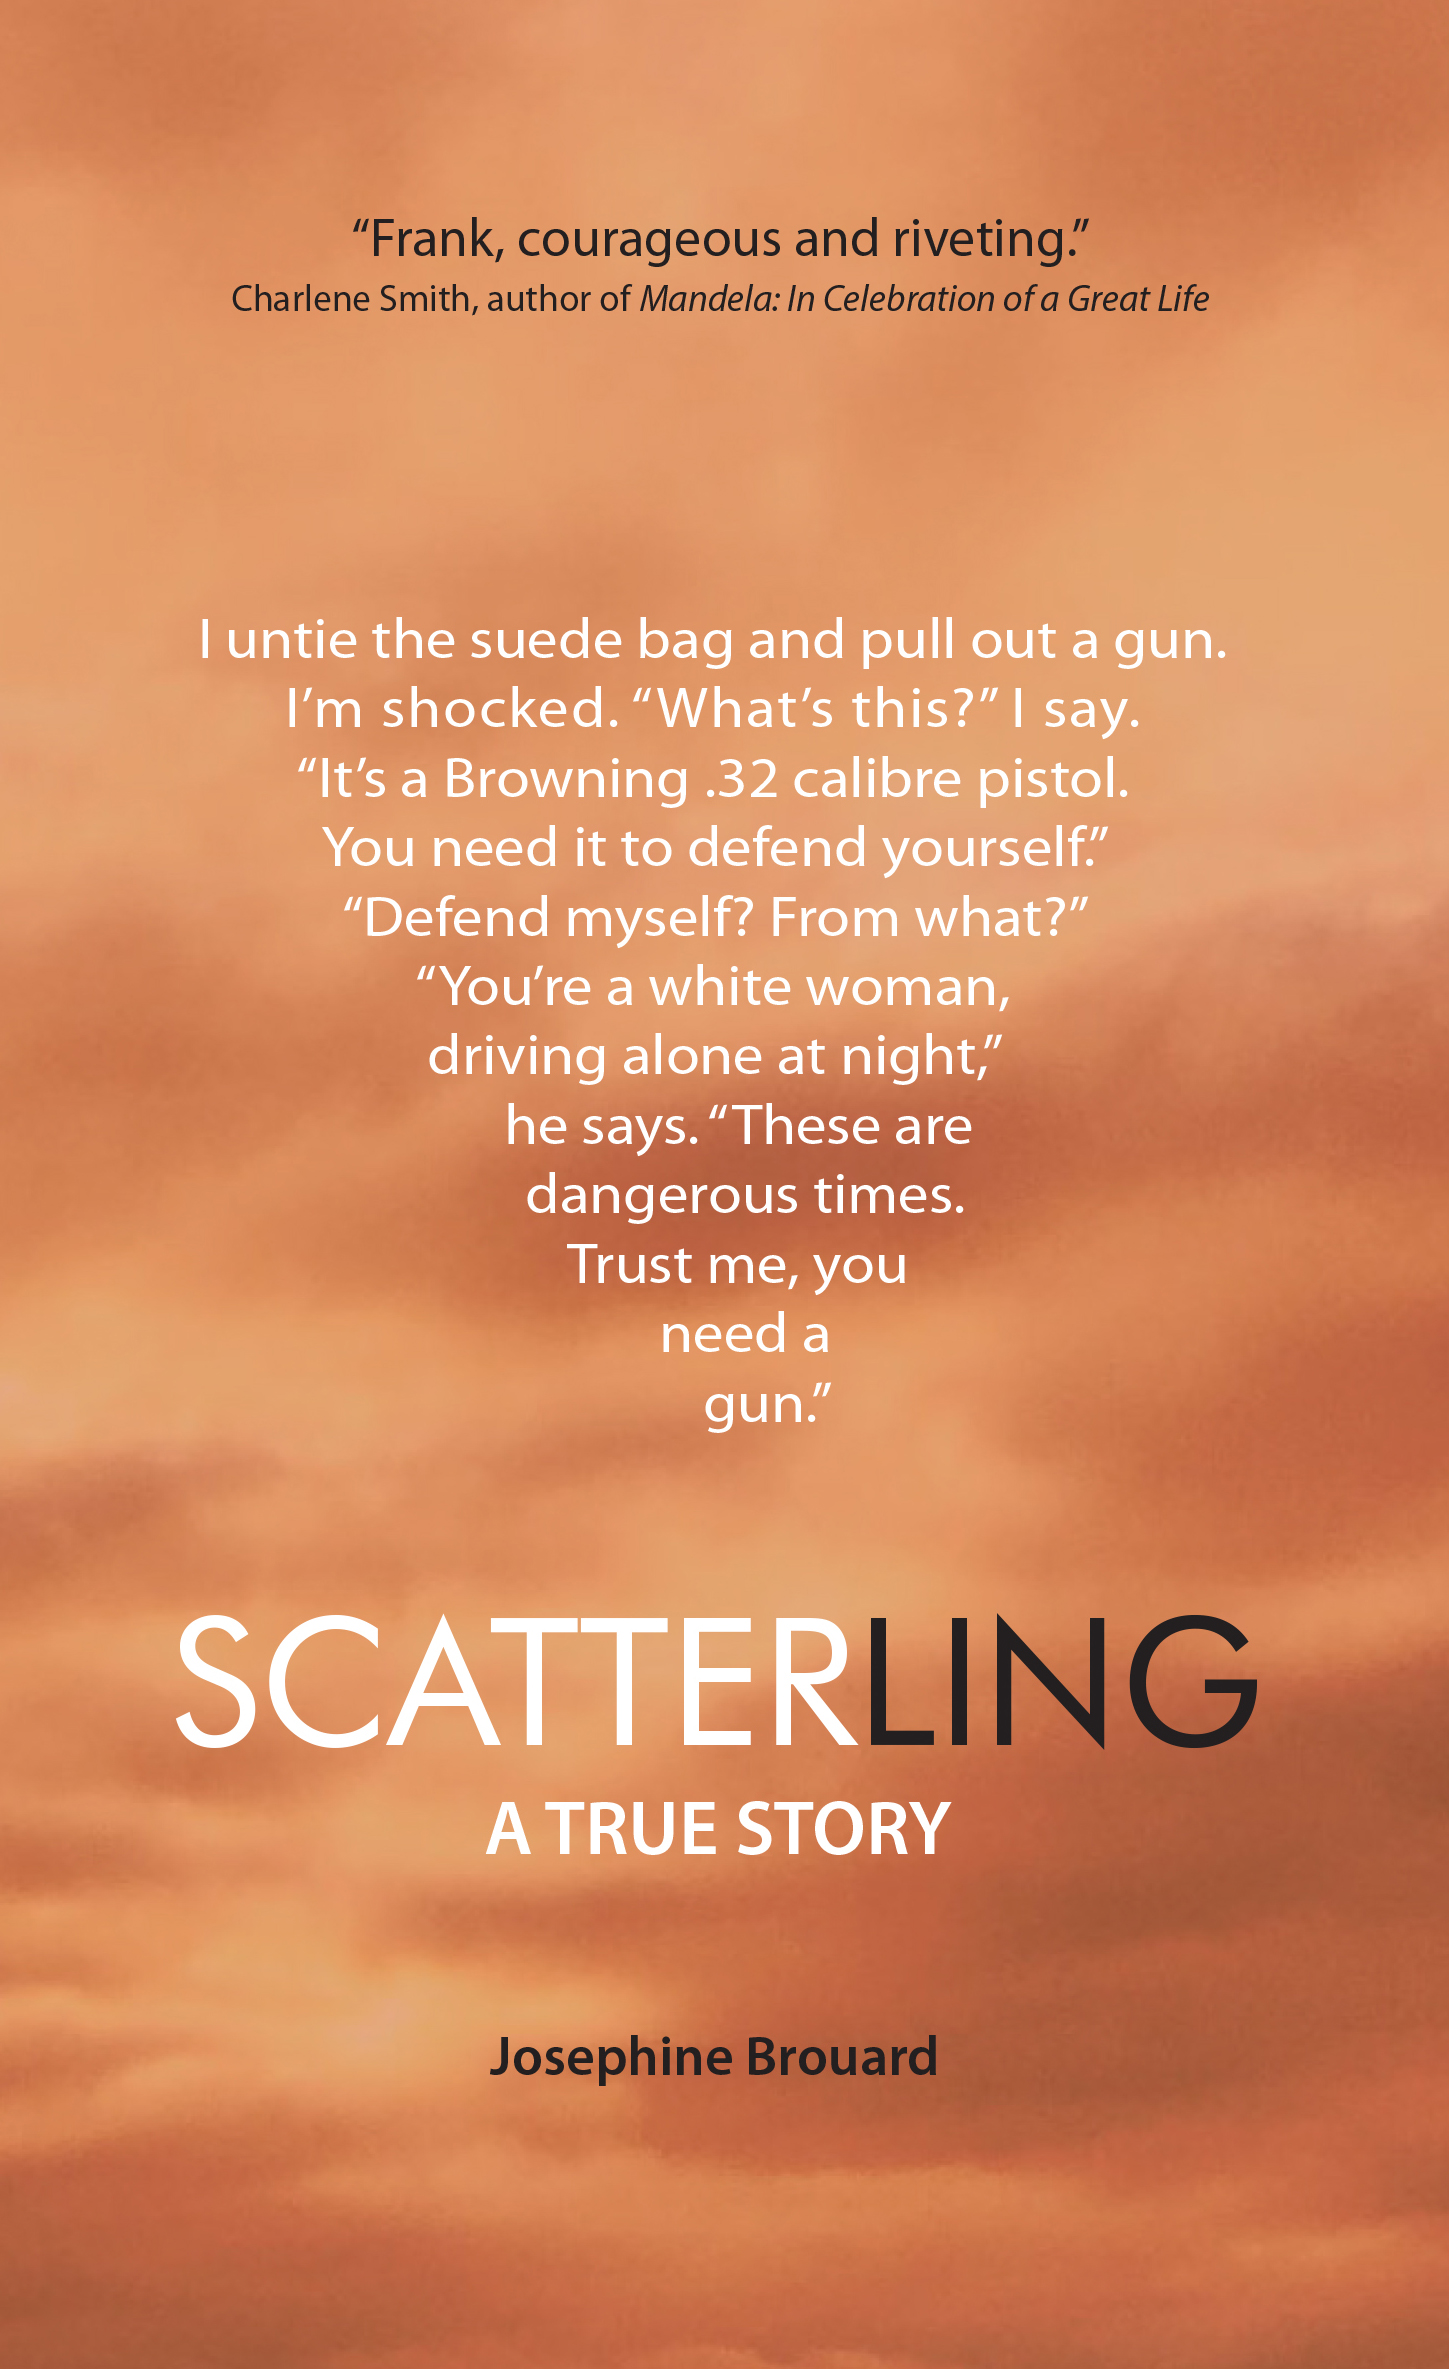 Scatterling - A True Story - Josephine Brouard